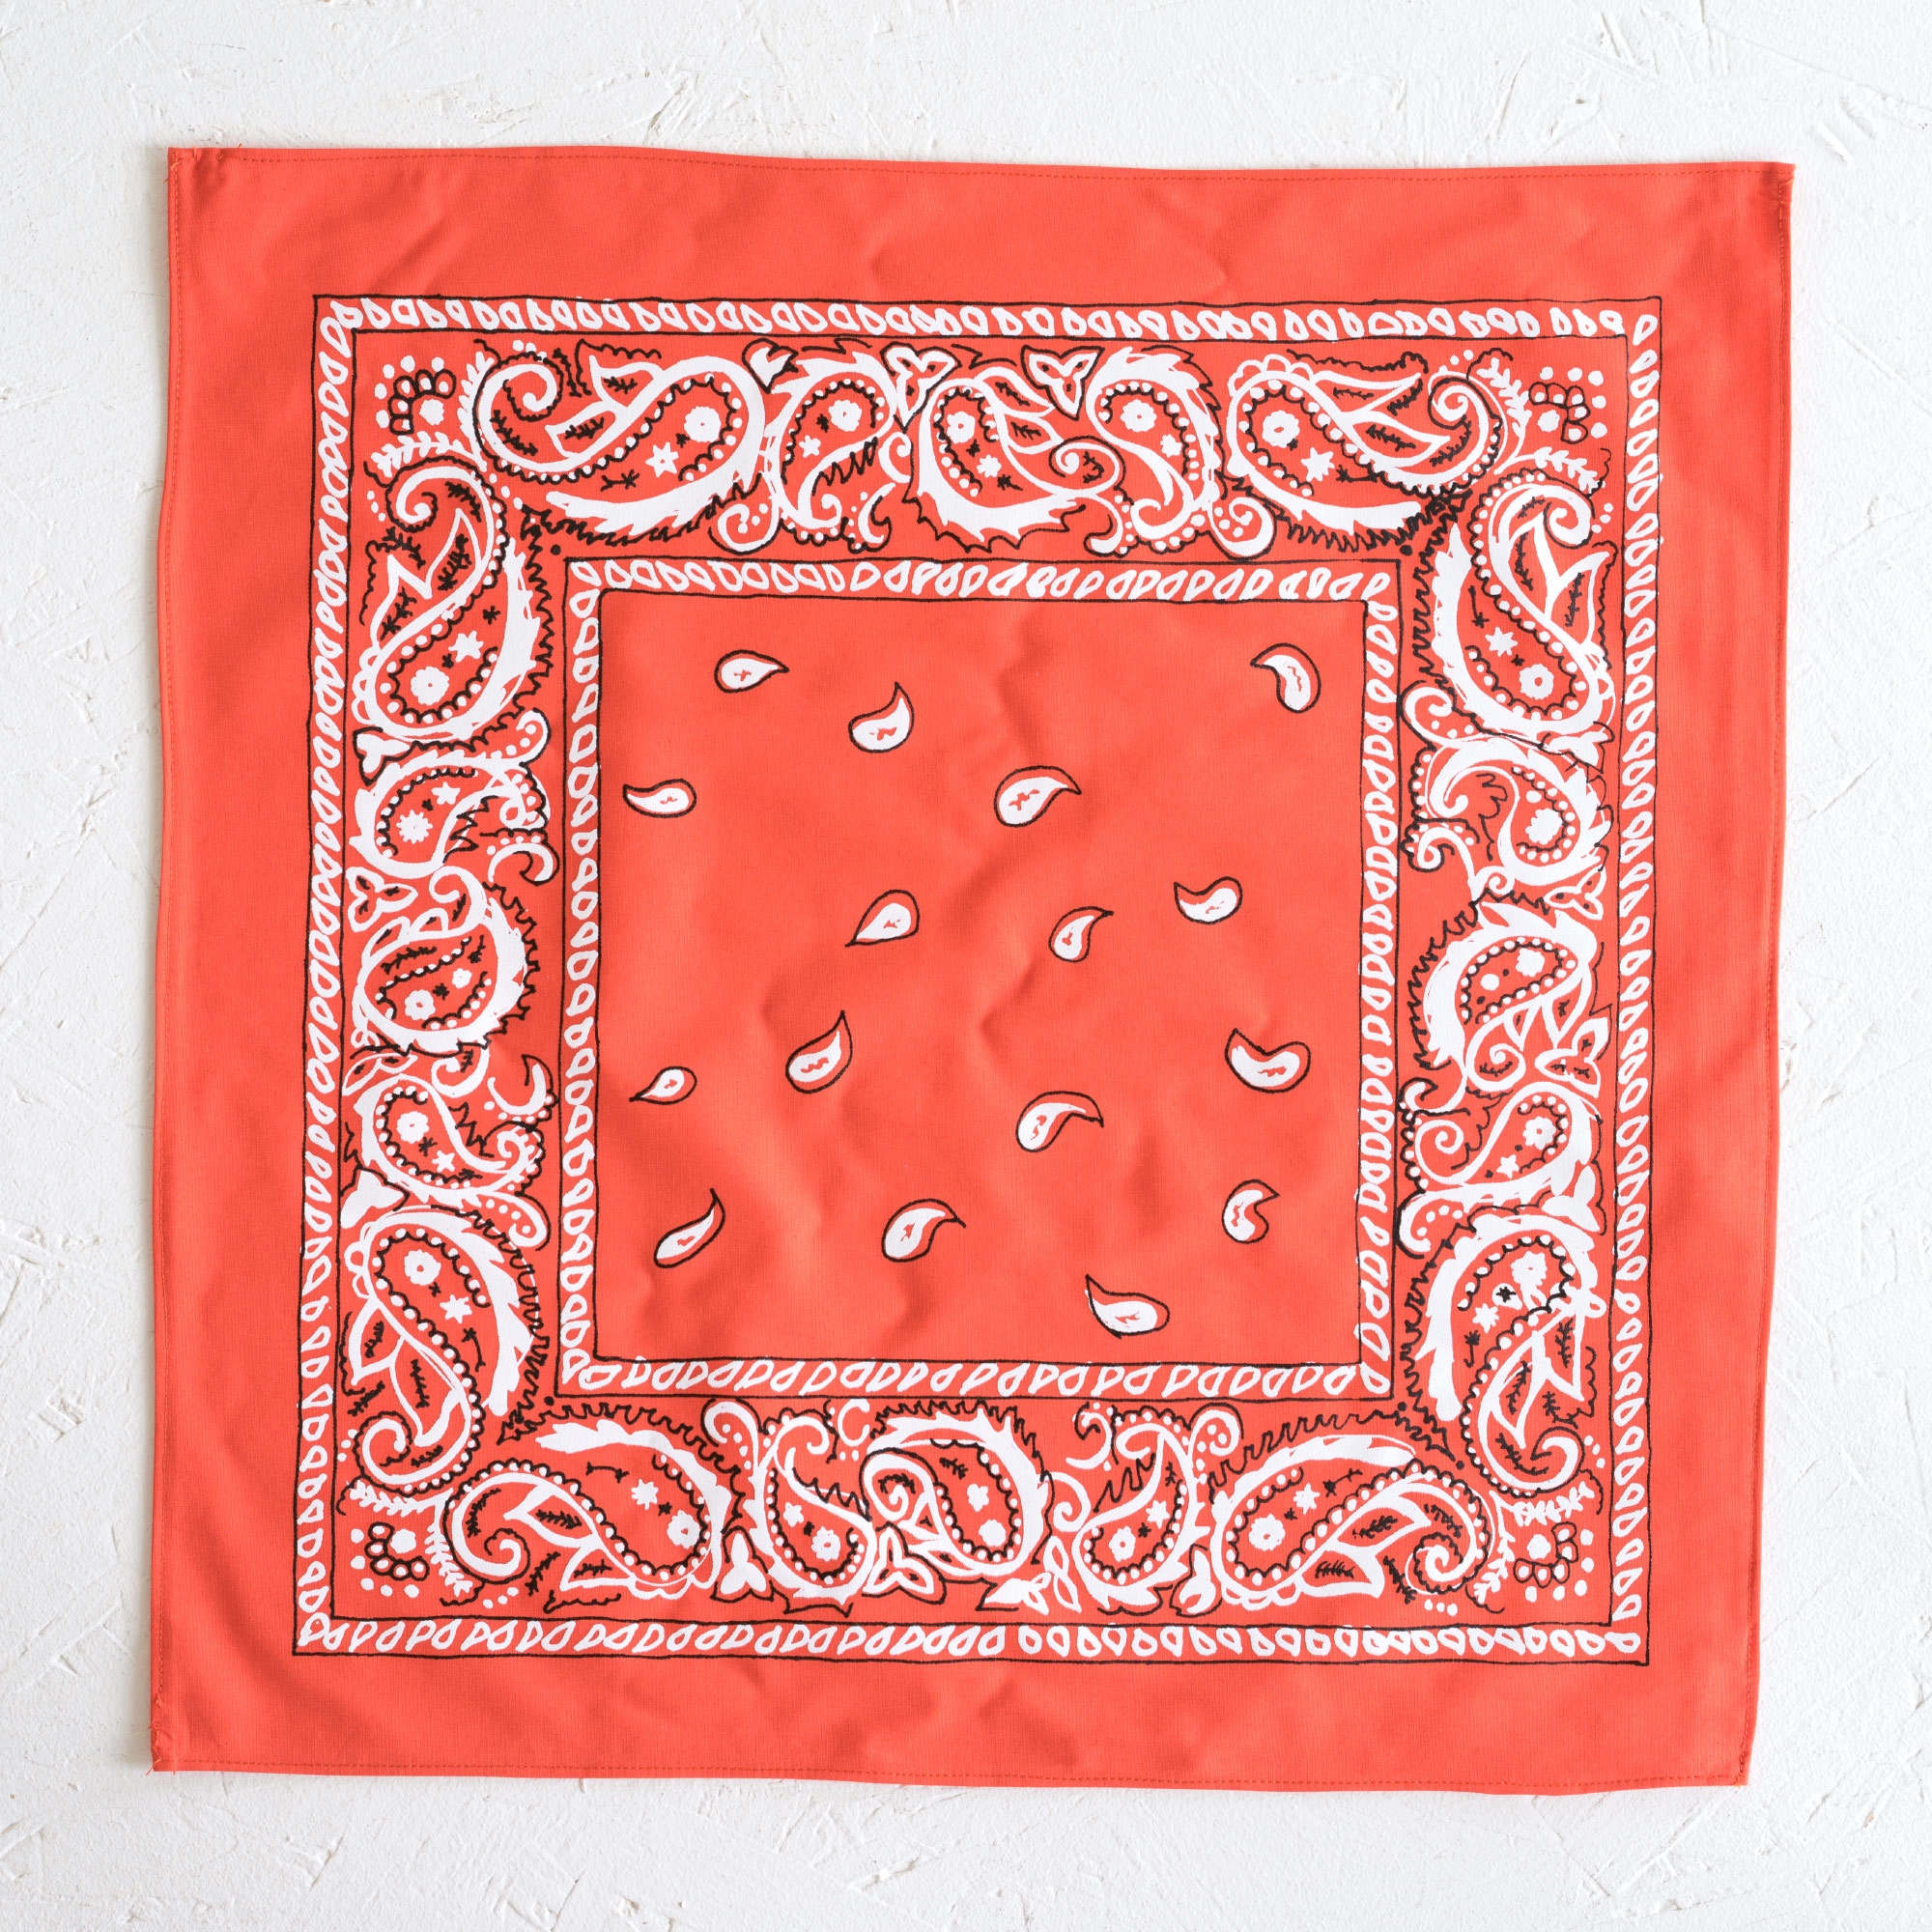 Nancy Davidson, *Hanky Code* (Orange), 2016, Two color silkscreen on hand cut & sewn cotton, 17 x 17 inches (43.18 x 43.18 cm)